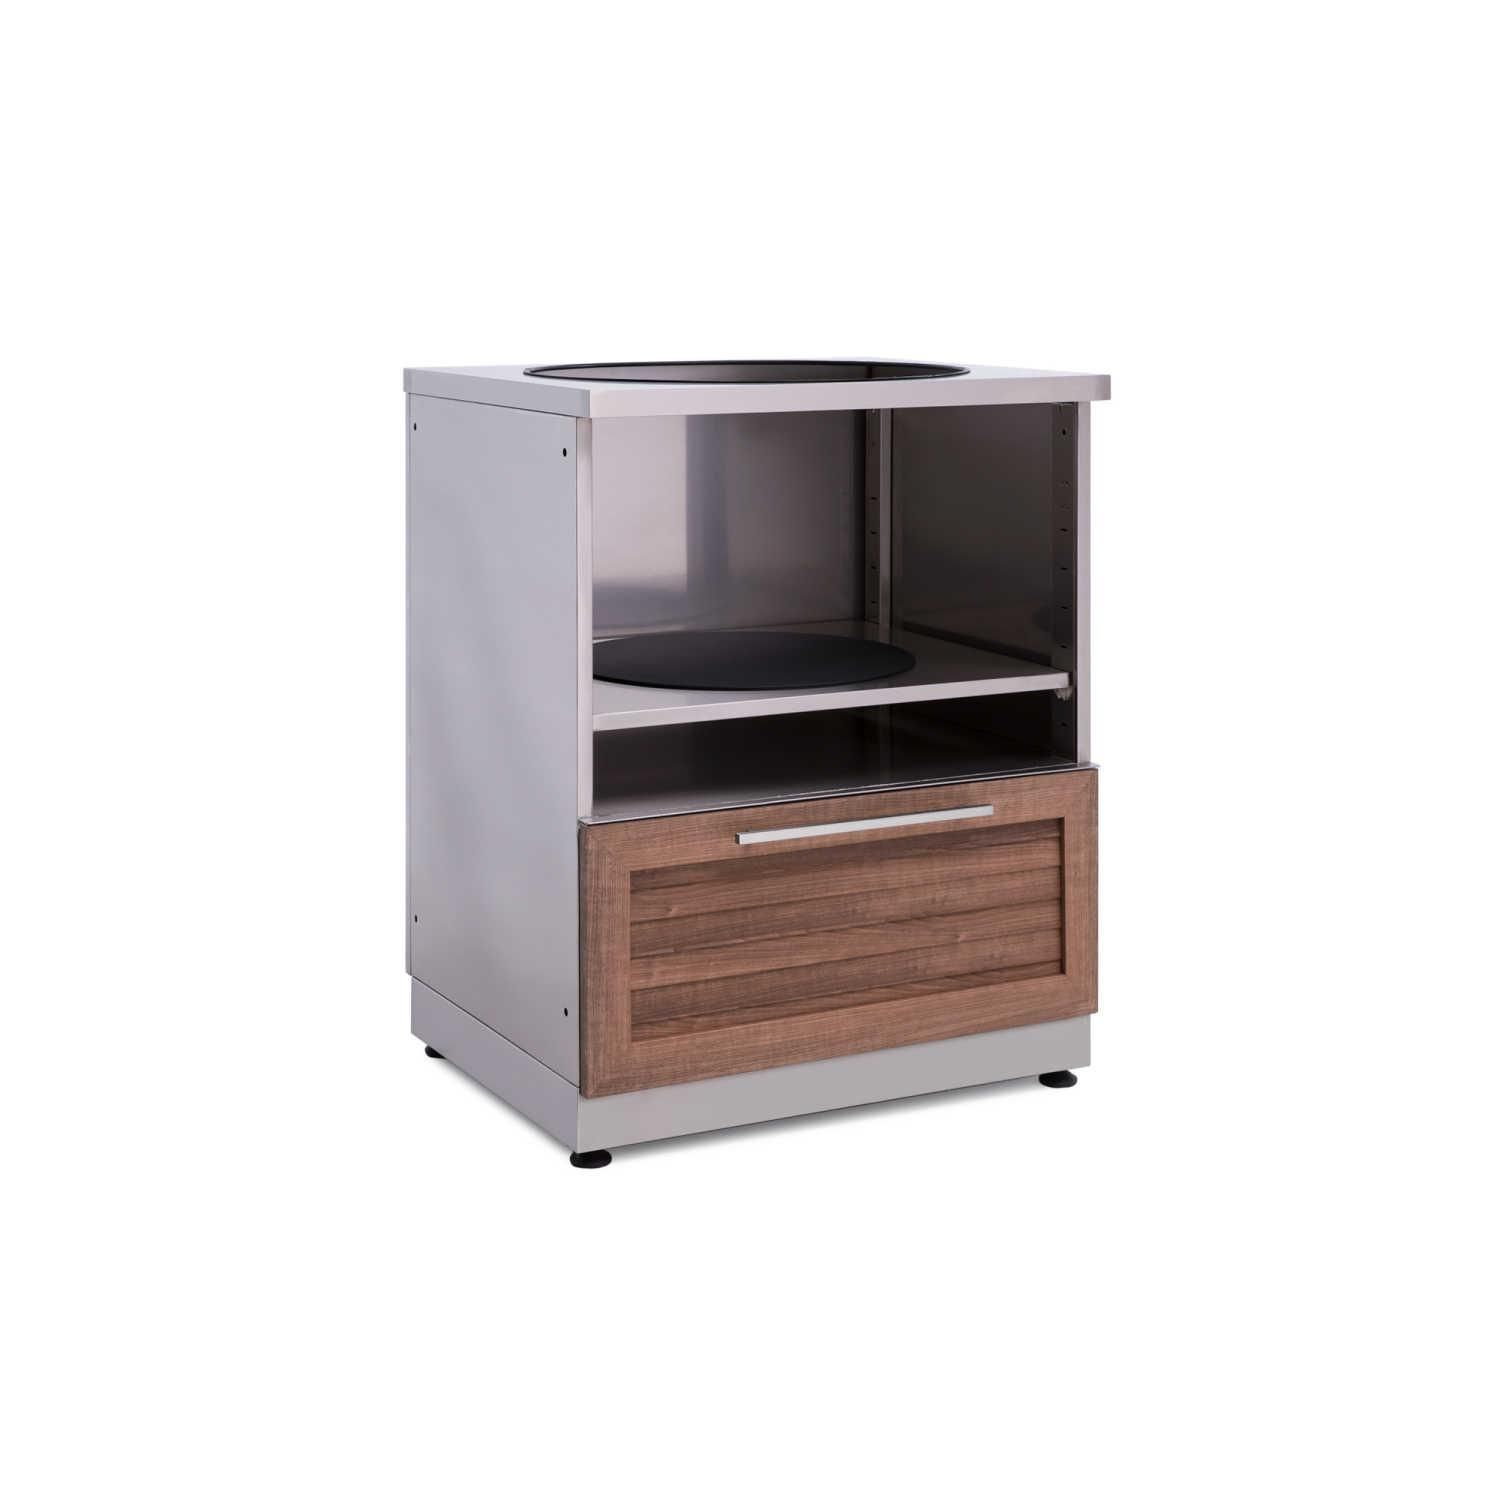 Newage Outdoor Kitchen Stainless Steel Kamado Cabinet In Grove 65610 Outdoor Kitchen Cabinets Outdoor Kitchen Newage Products